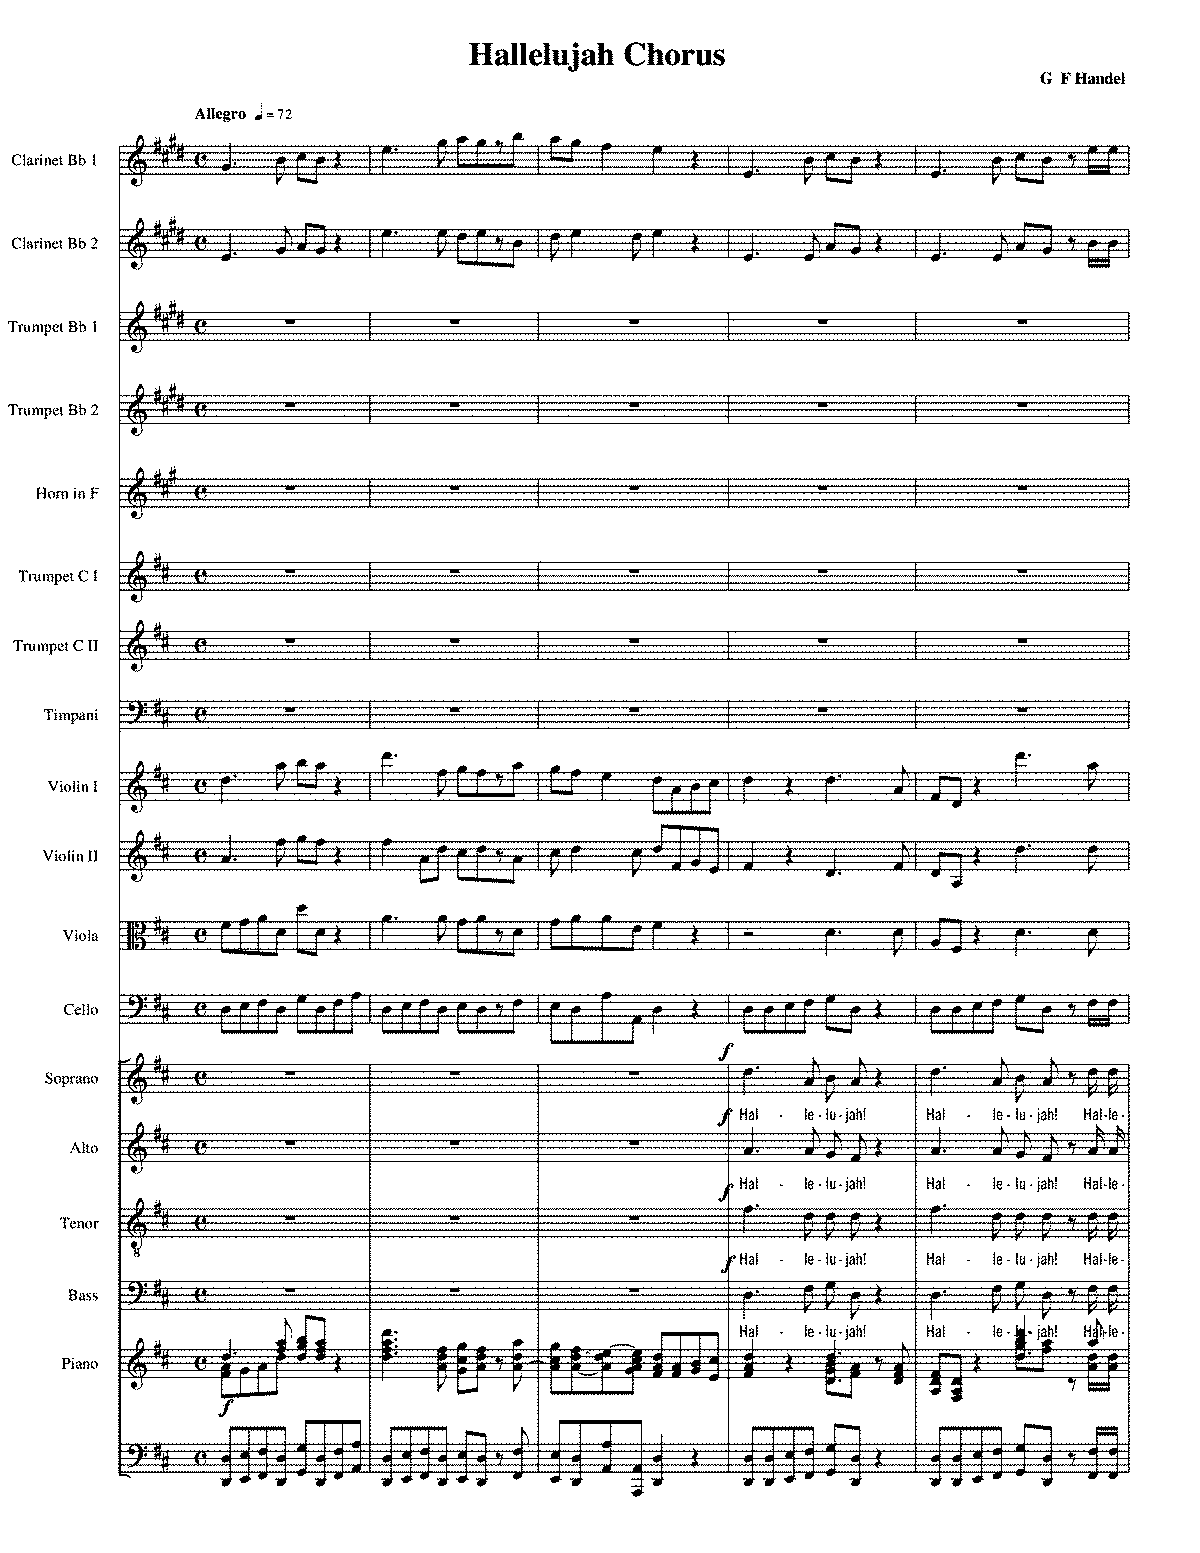 photo regarding Hallelujah Piano Sheet Music Free Printable referred to as Document:PMLP90564-Hallelujah Refrain Conductors Rating.pdf